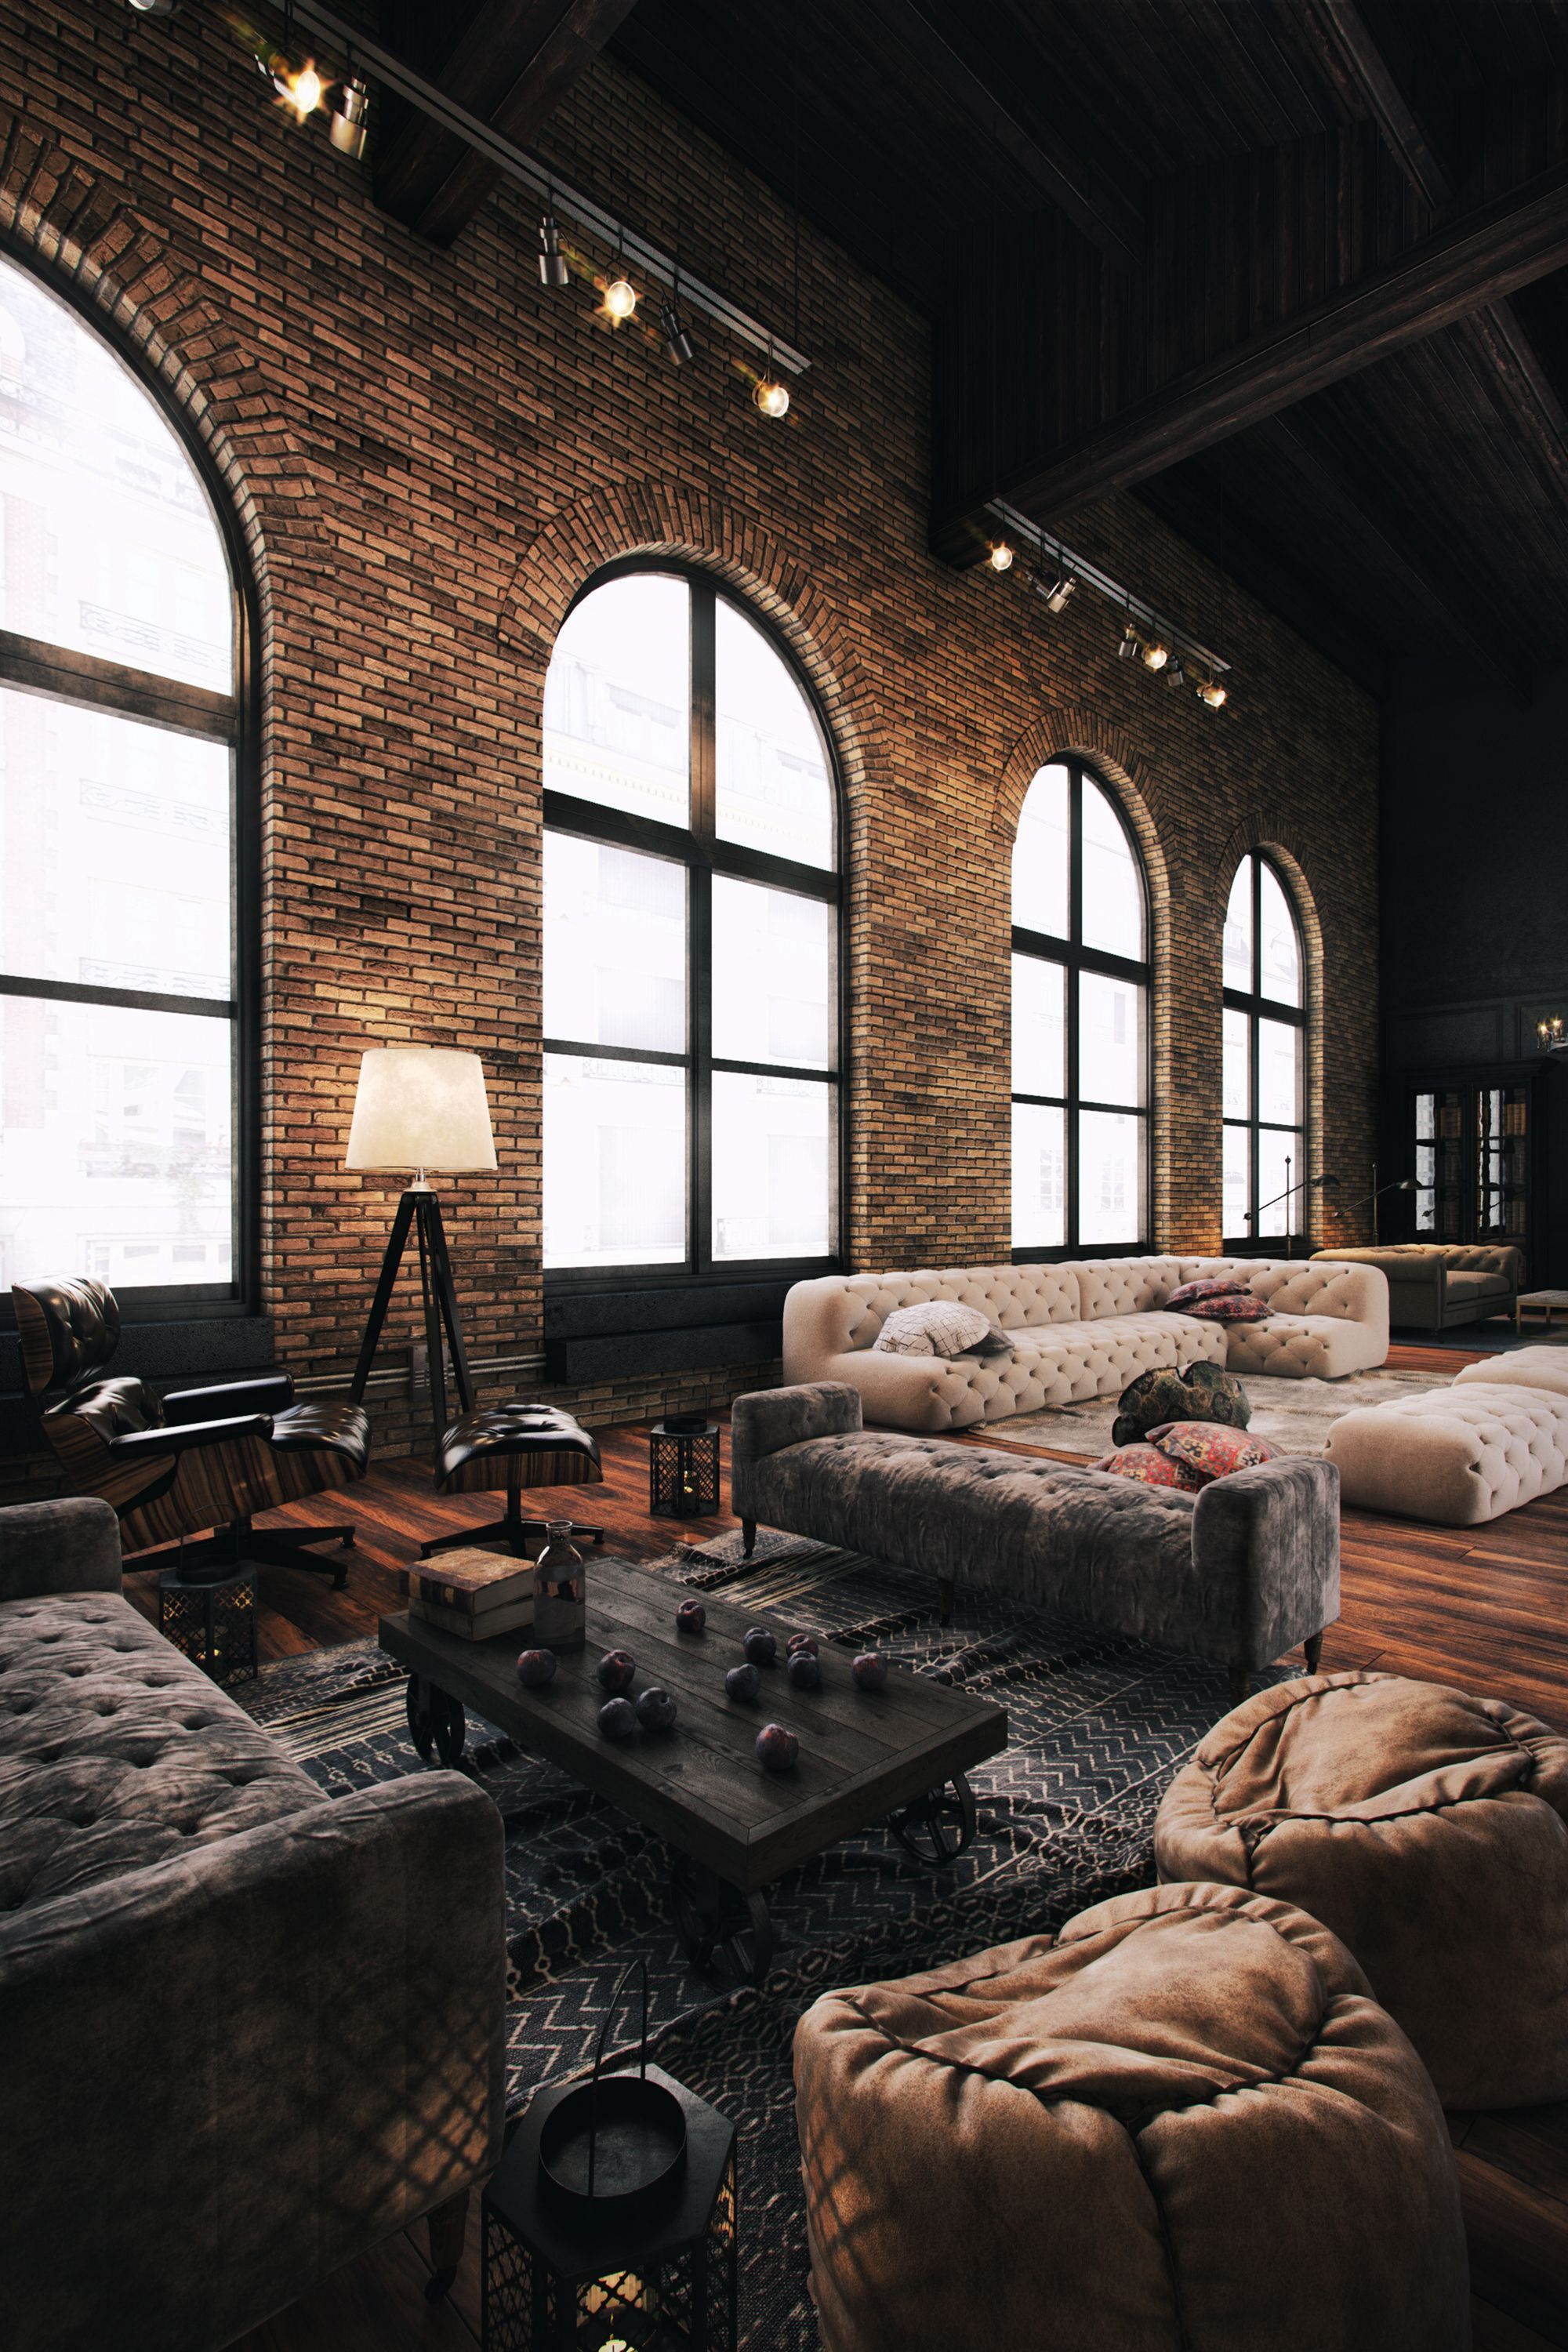 30 Cozy Industrial Living Room Design Ideas That Will Amaze Your Guests #loftdesign